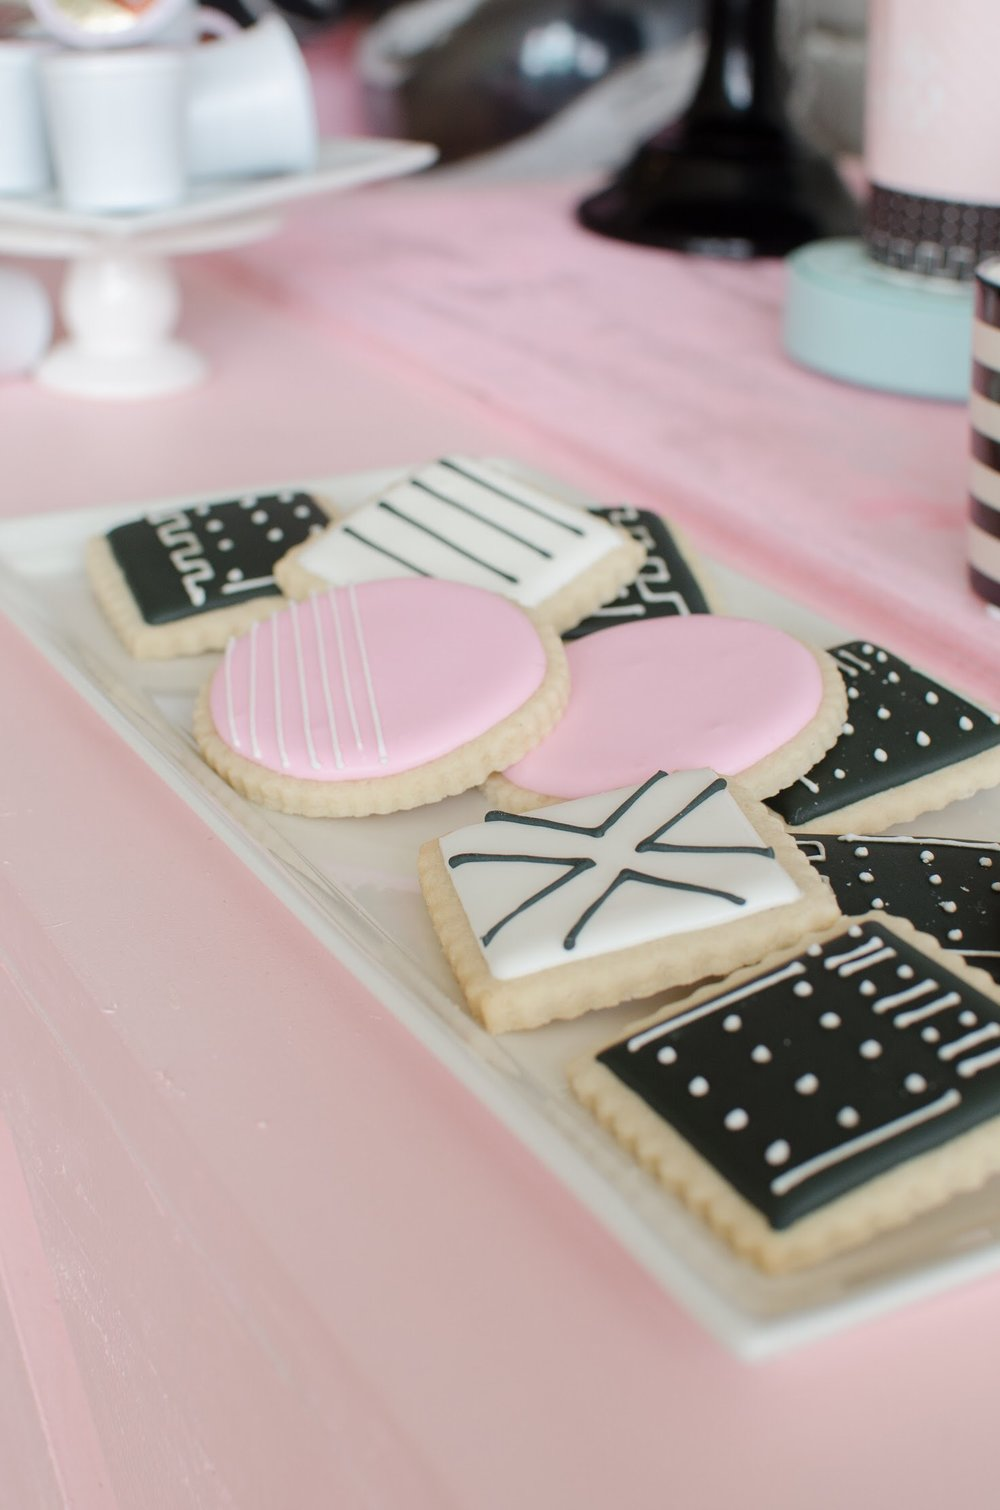 Modern & Minimalist cookie design at Galentine's Day party